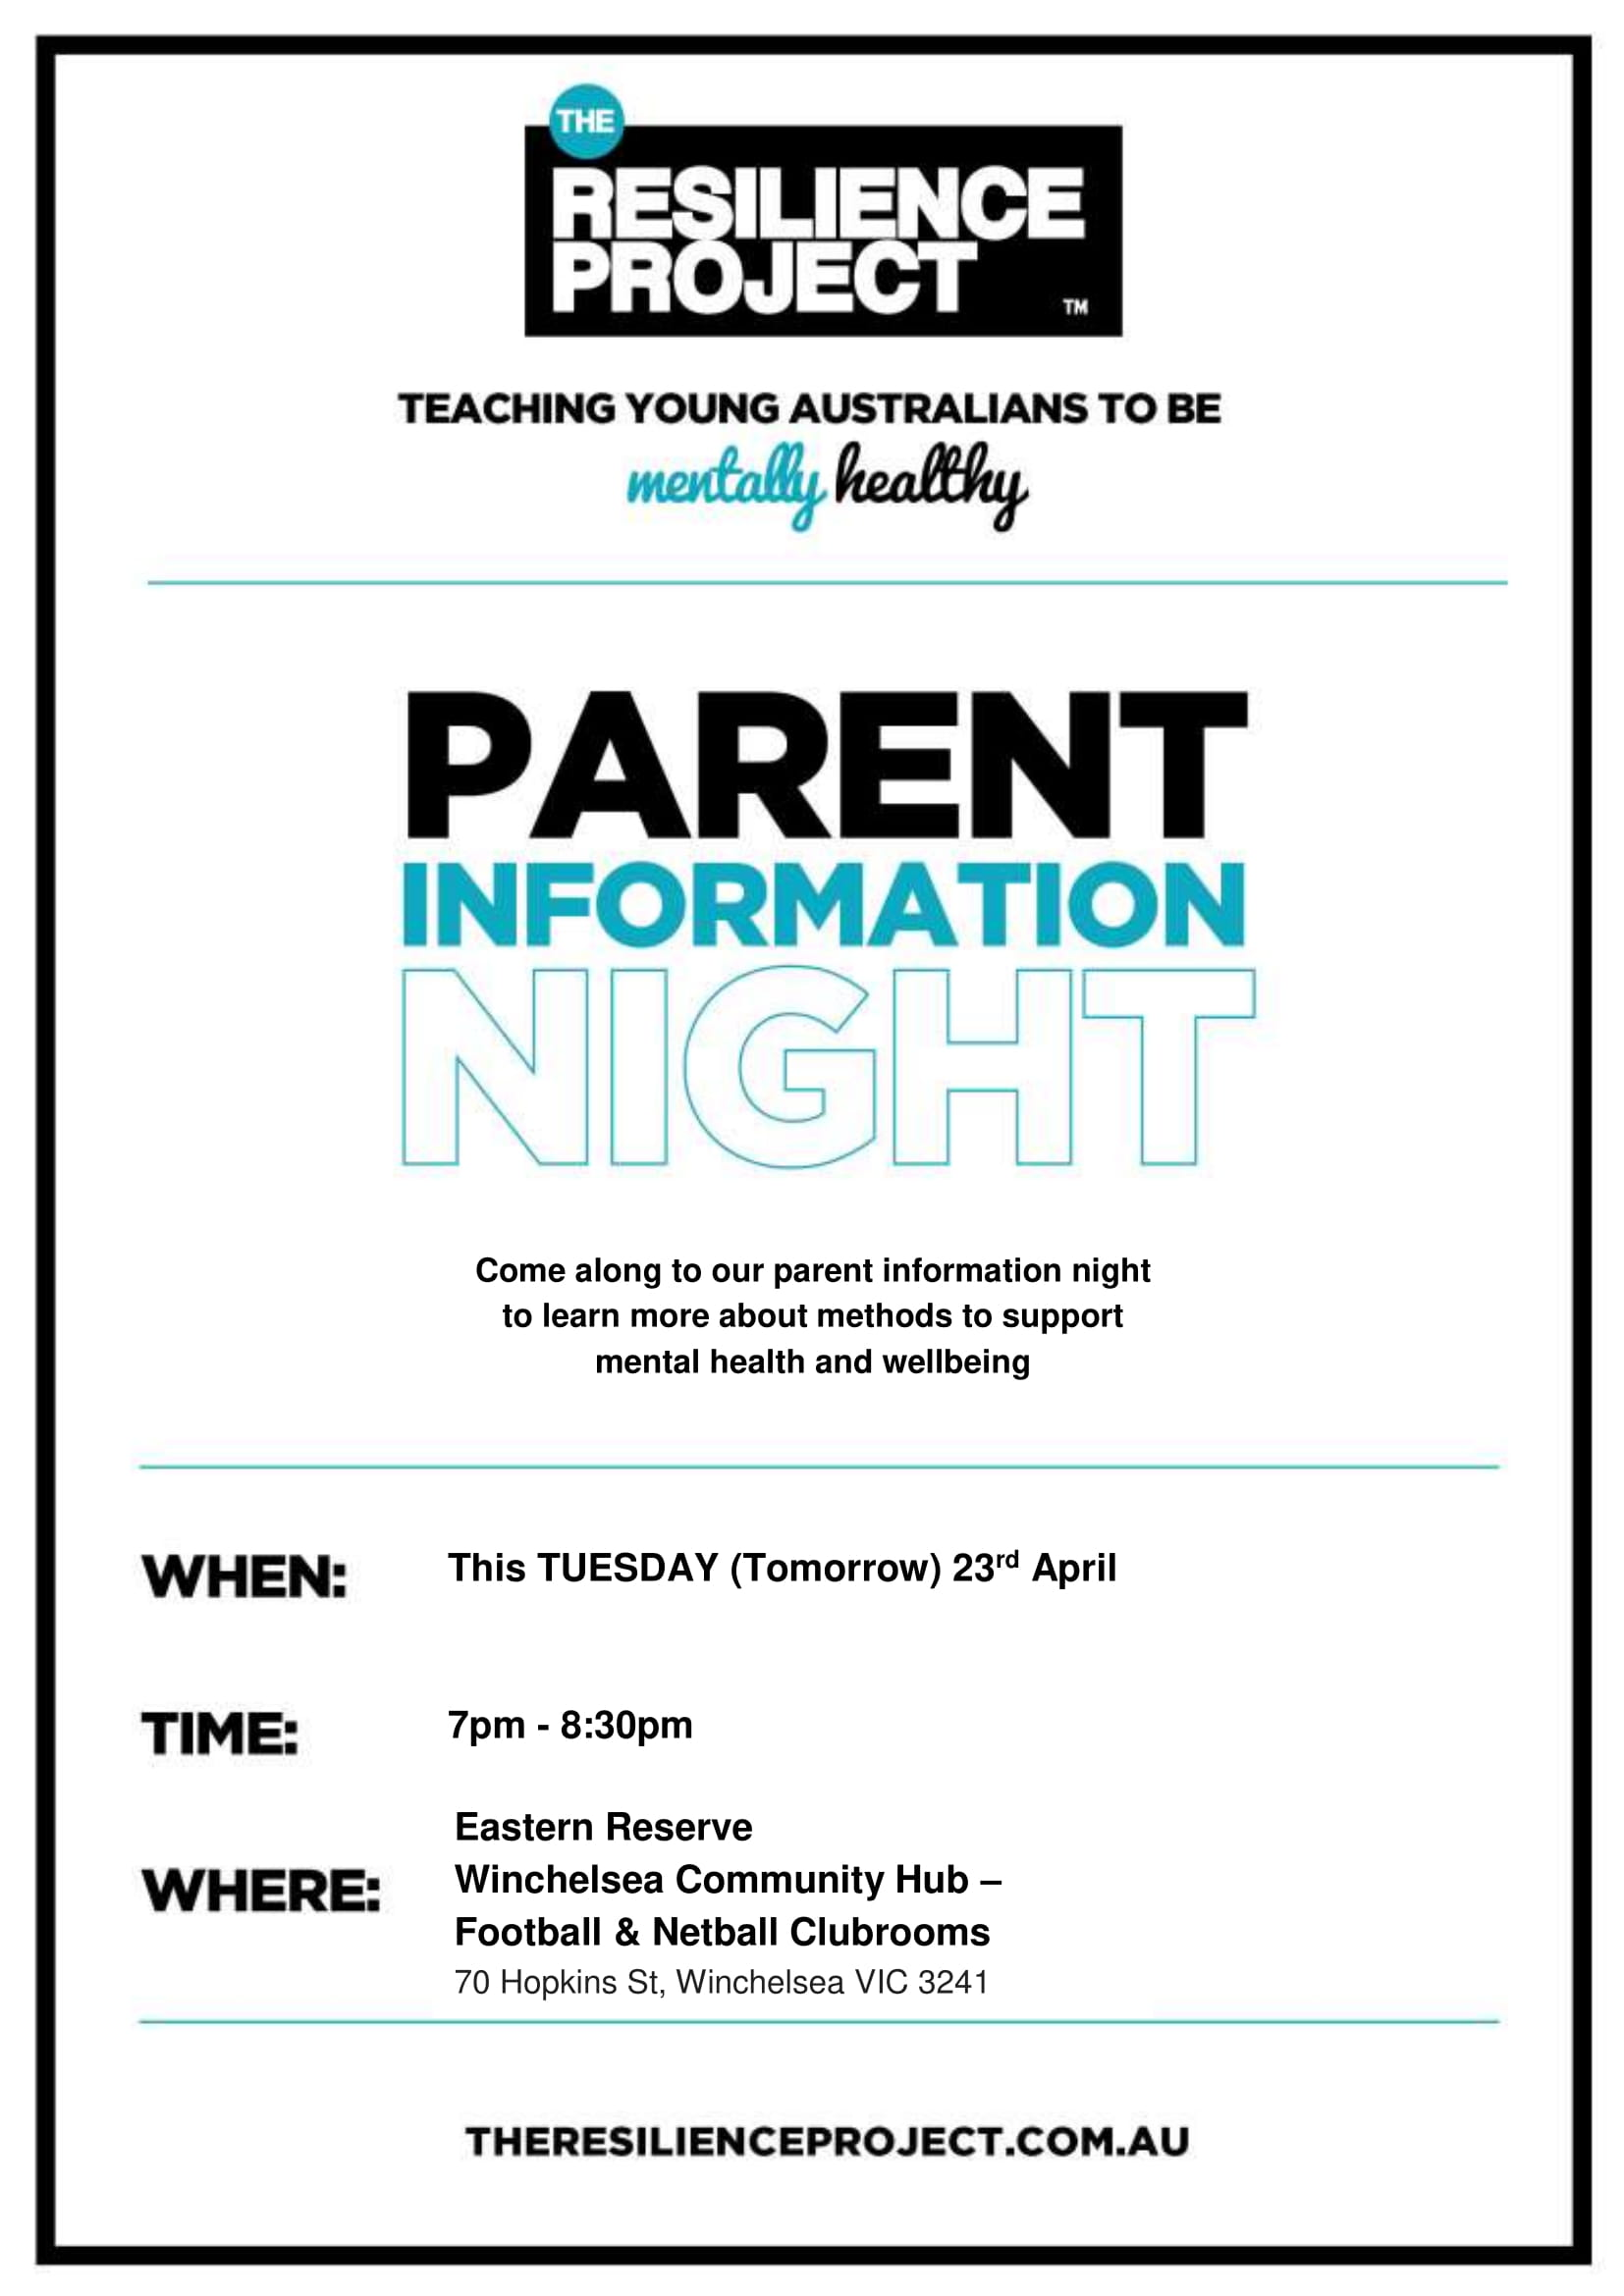 TRP - A4 Schools Program Parents Night Poster (Editable)-1.jpg